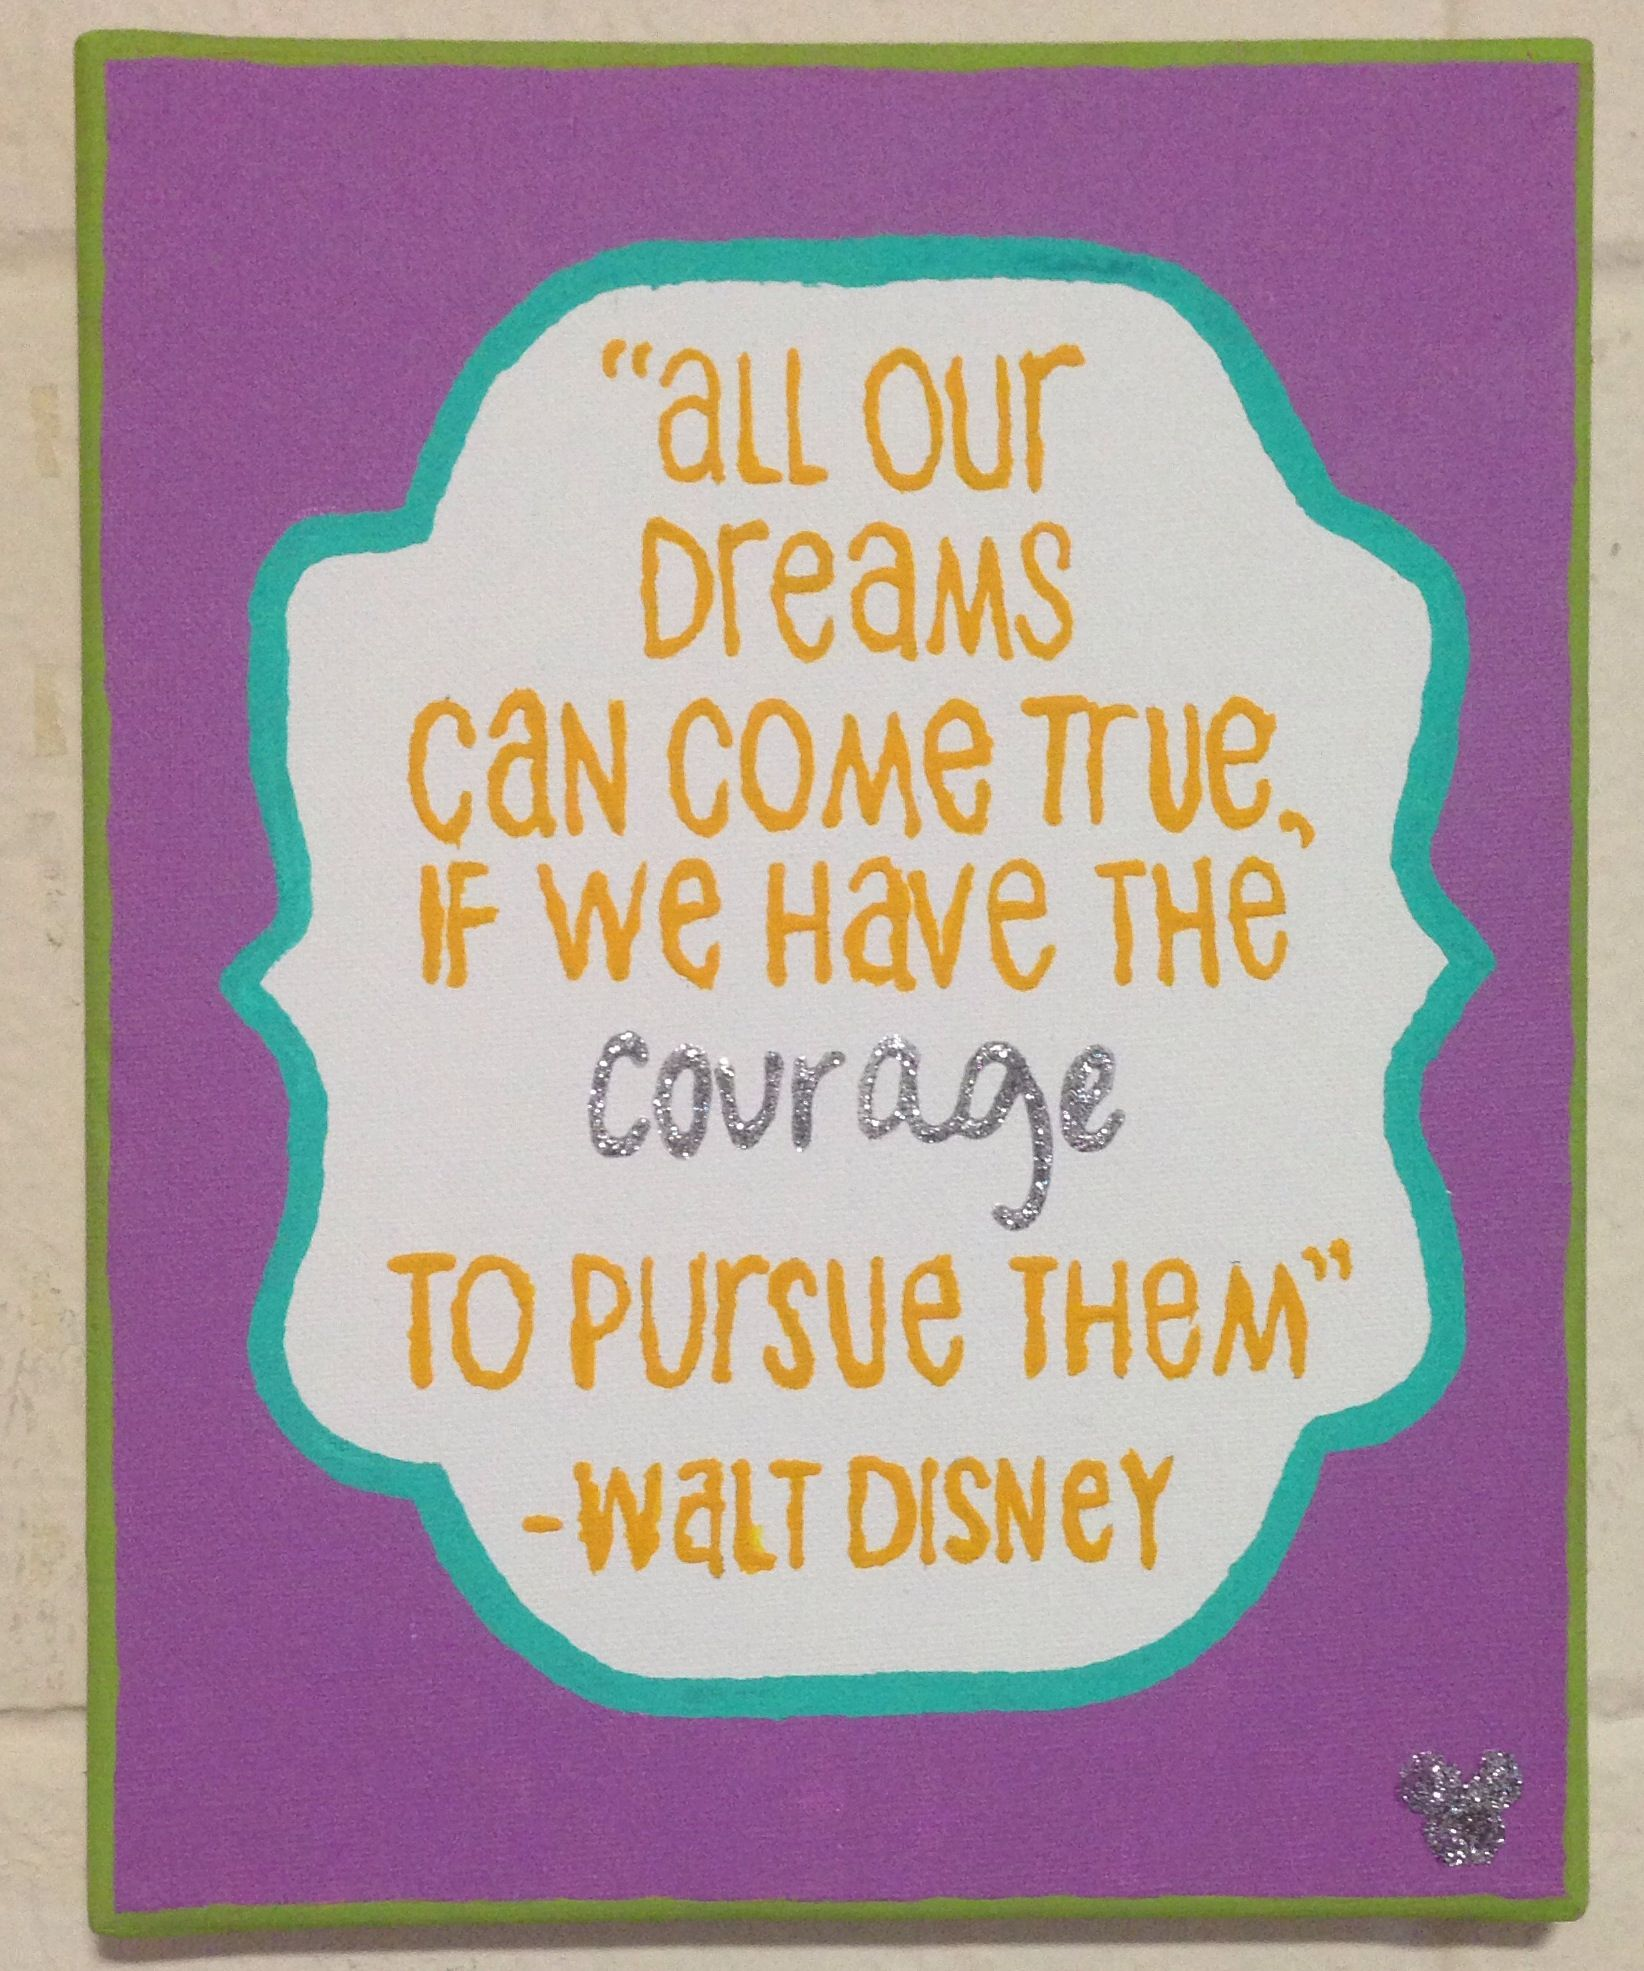 Friend Gif Handmade Wall Plaque Inspirational Disney Quote Gift What if I fall.